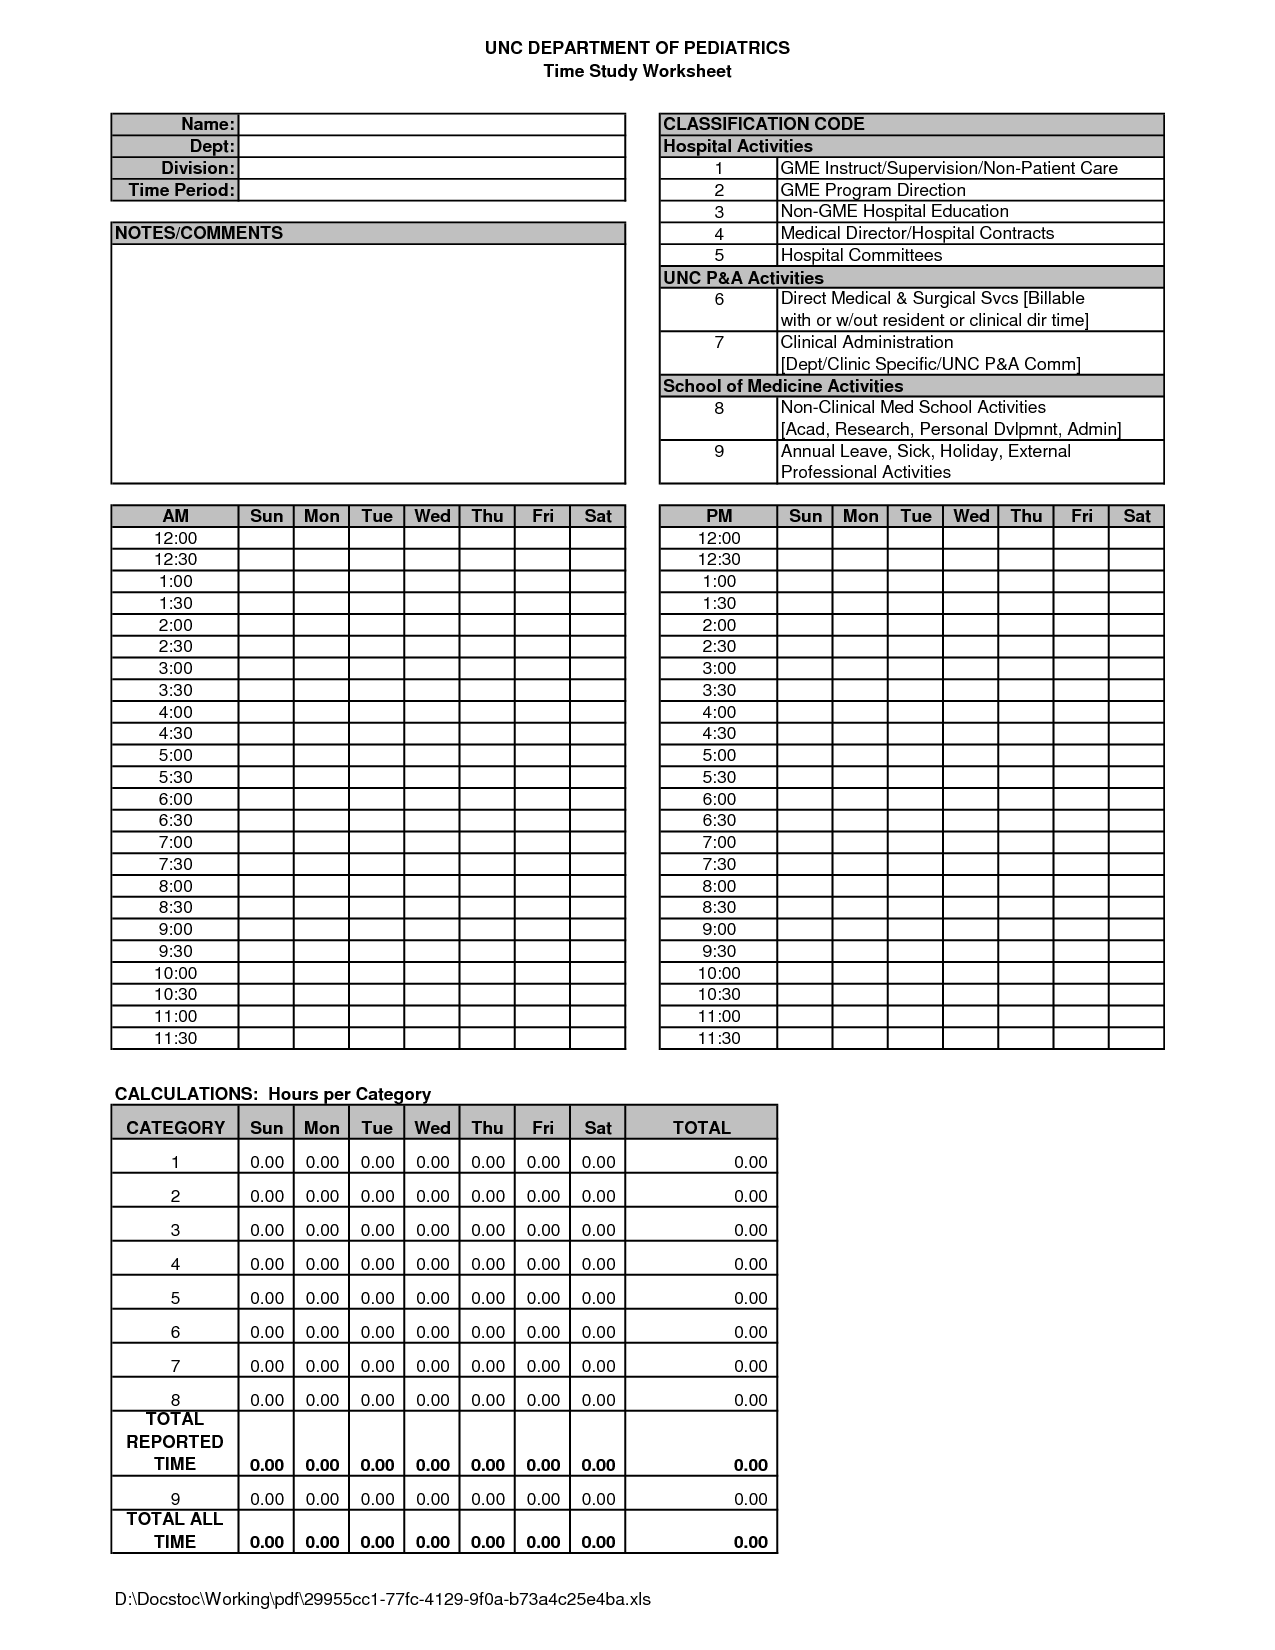 Time Study Worksheet Template